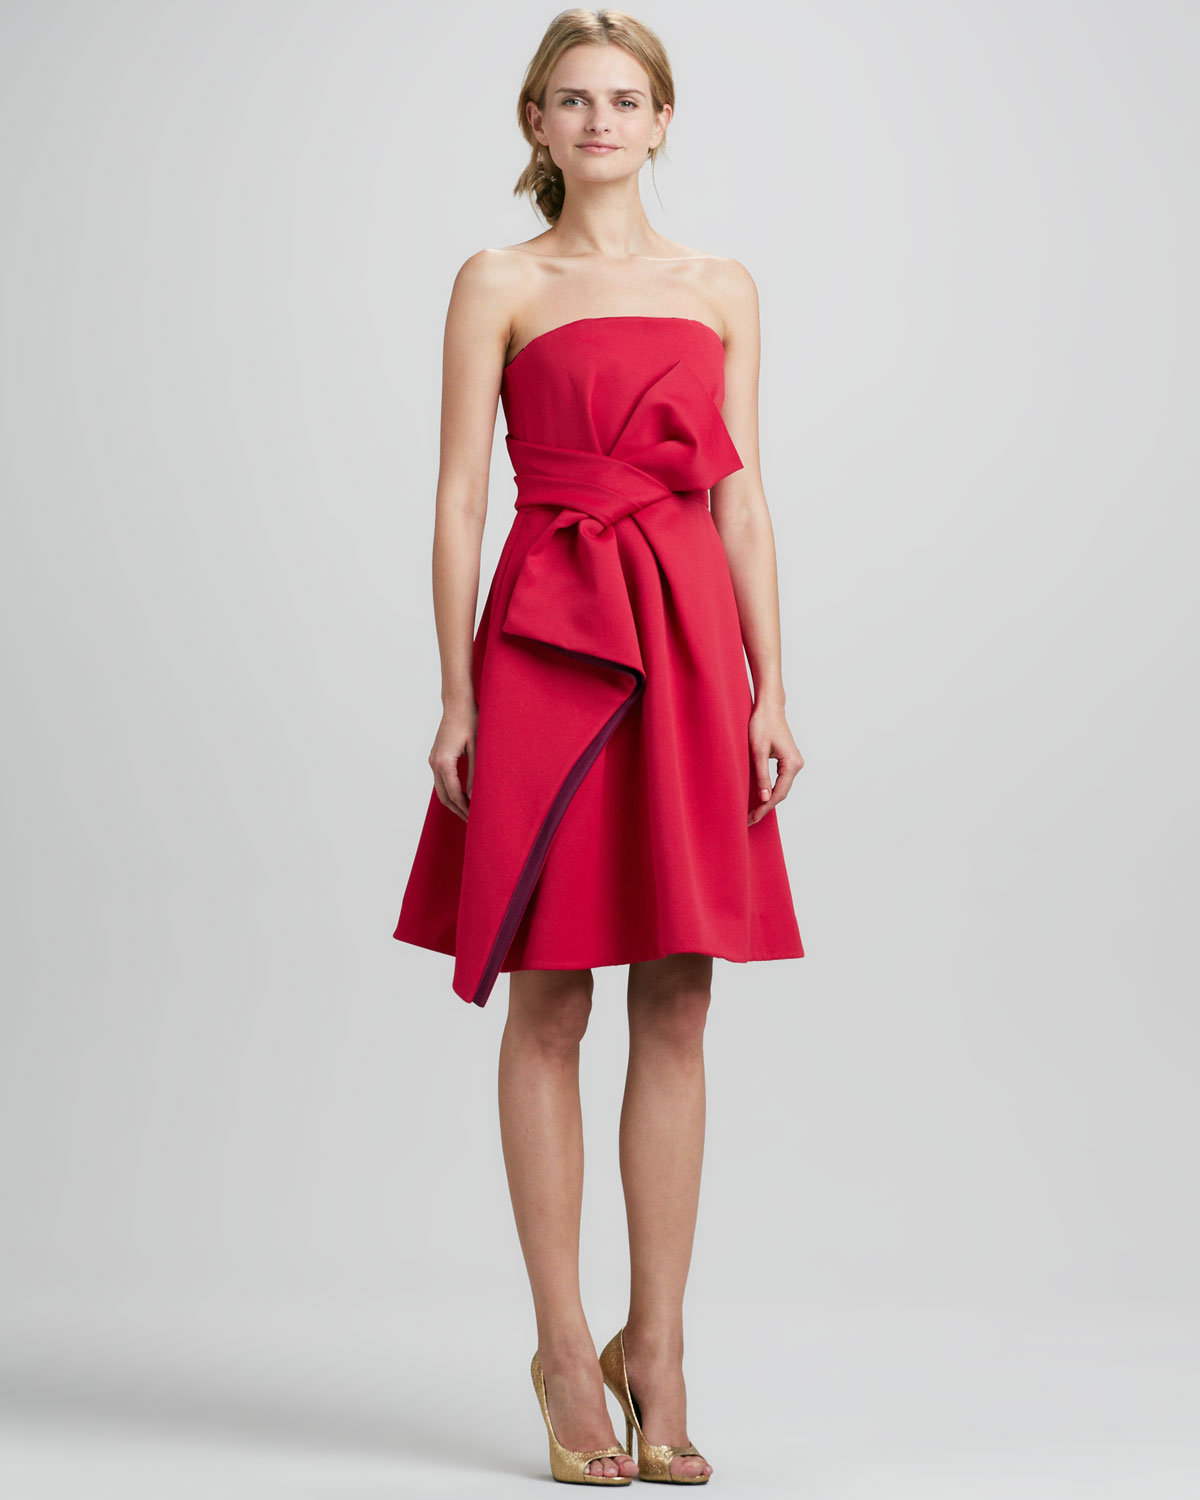 Halston Strapless Color Block Bow Dress in Red - Lyst